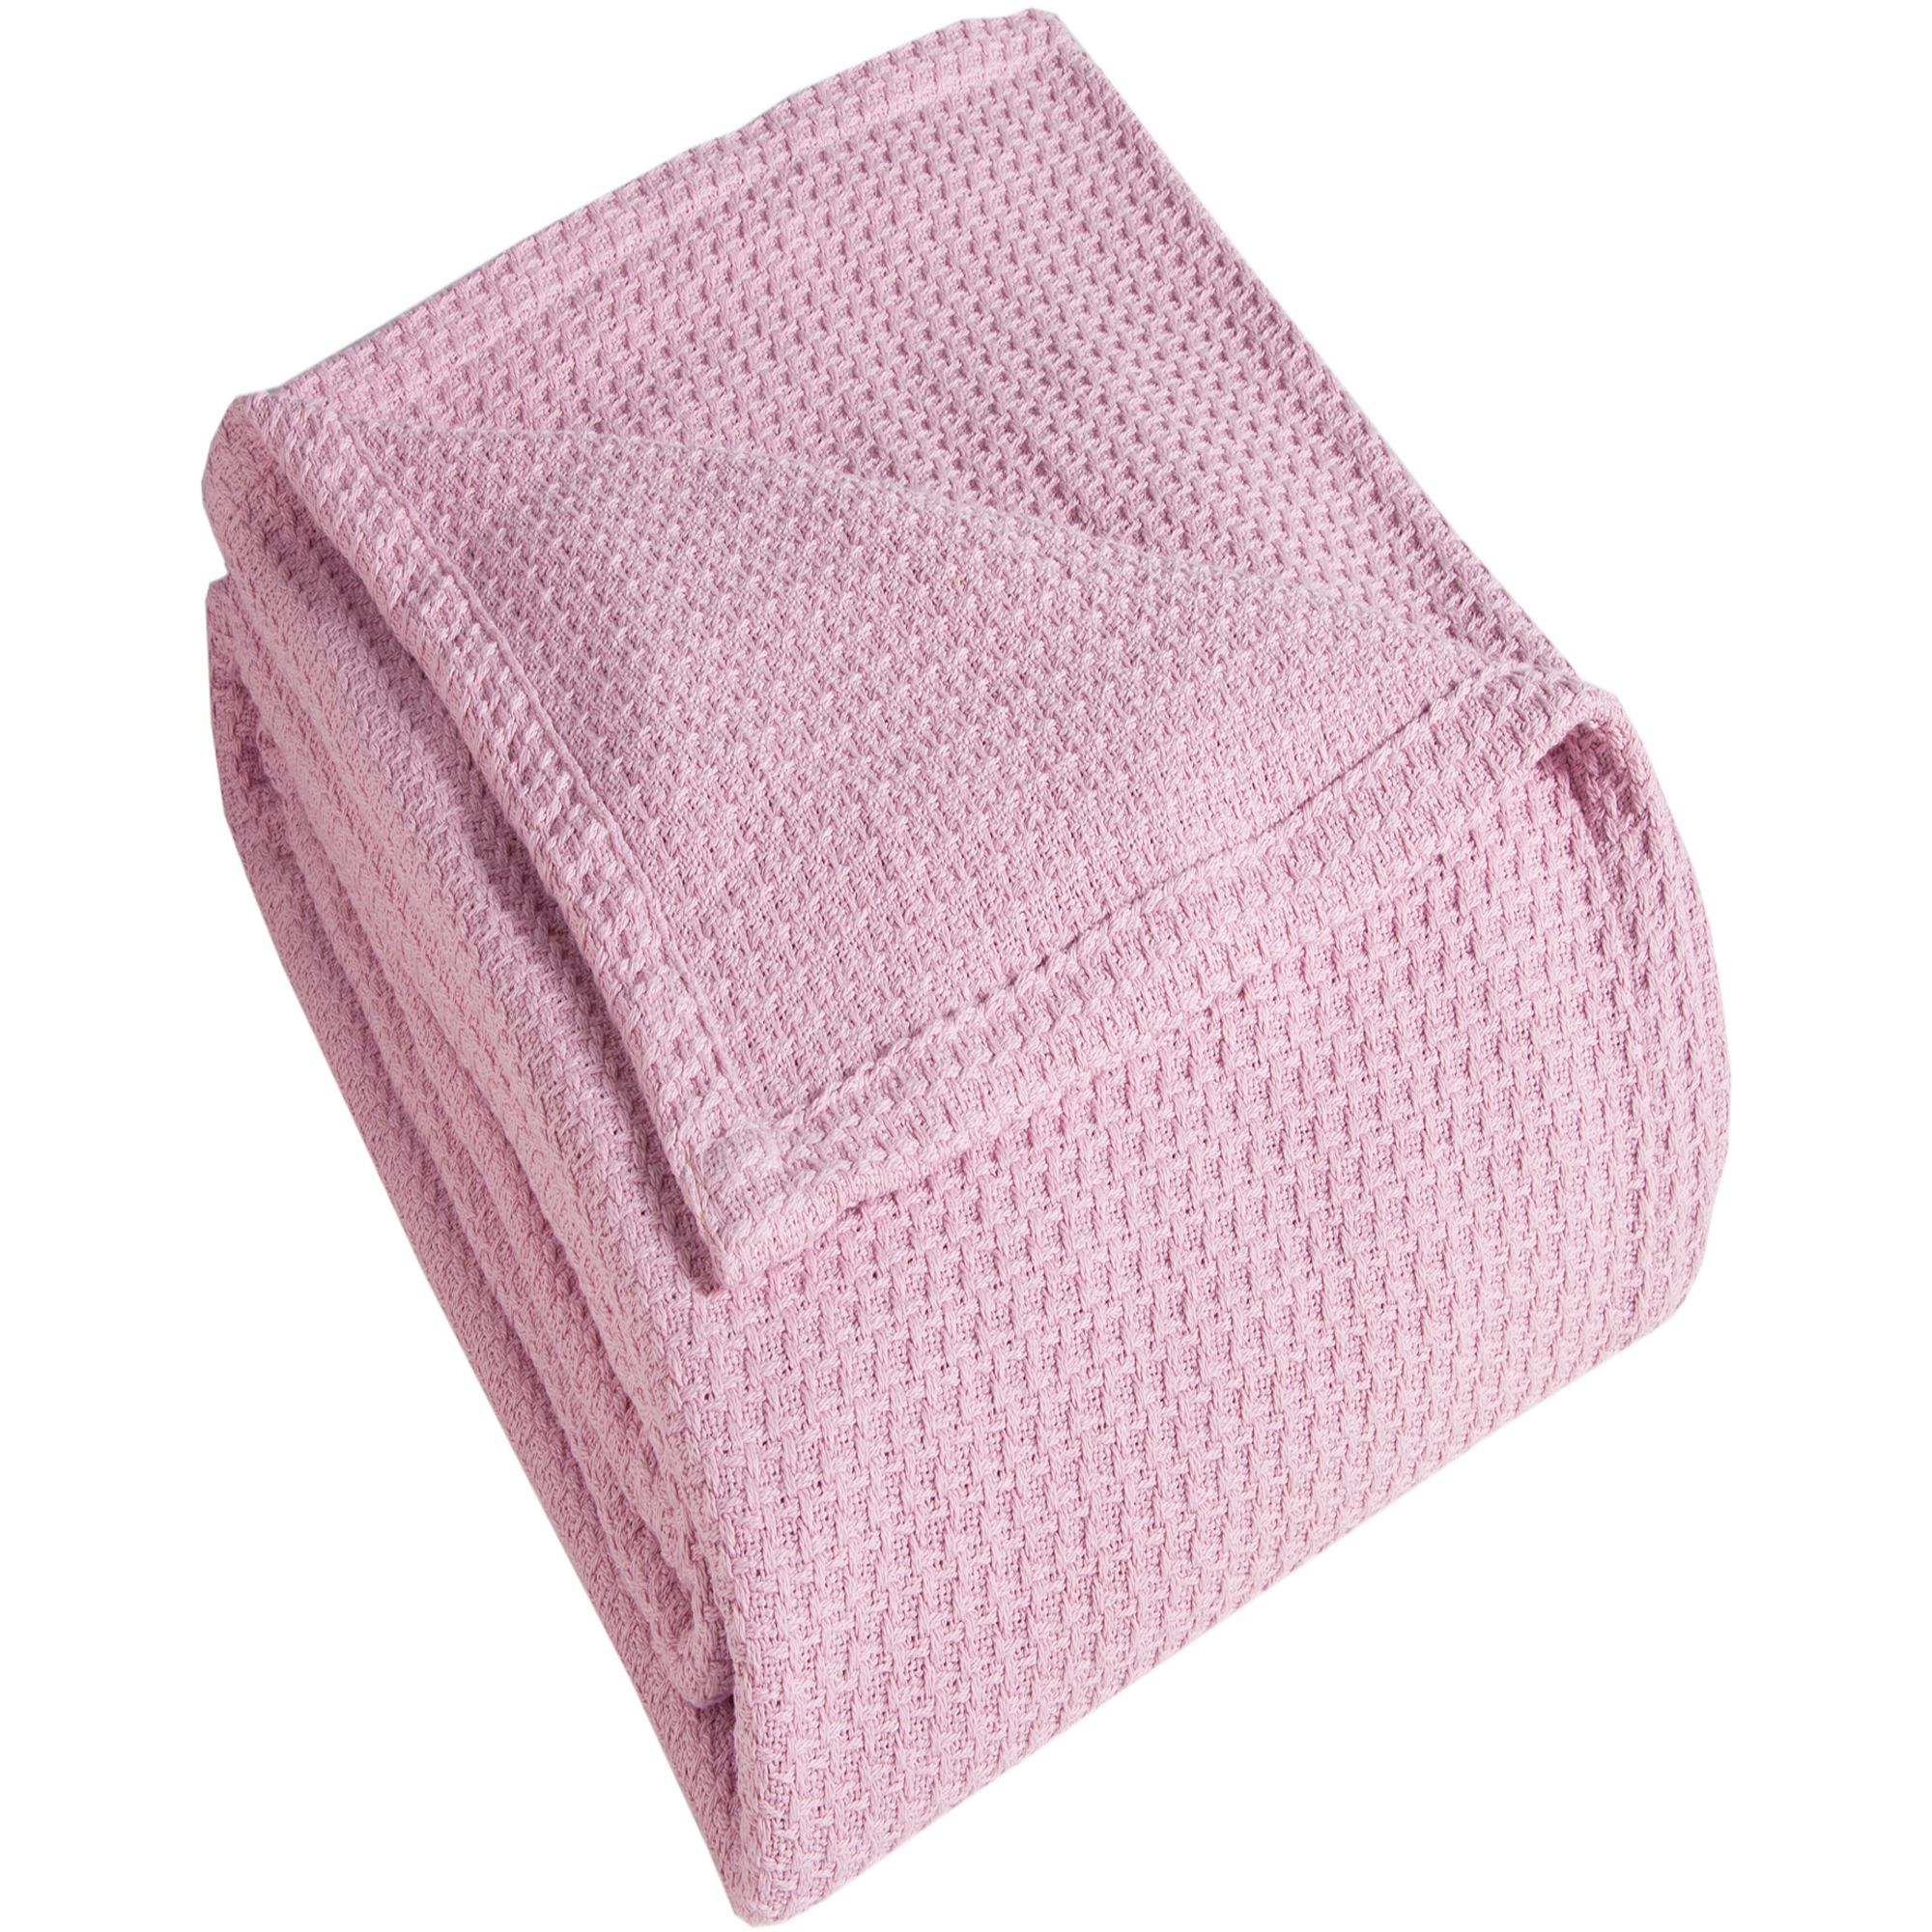 Grand Hotel Cotton Blanket by Generic